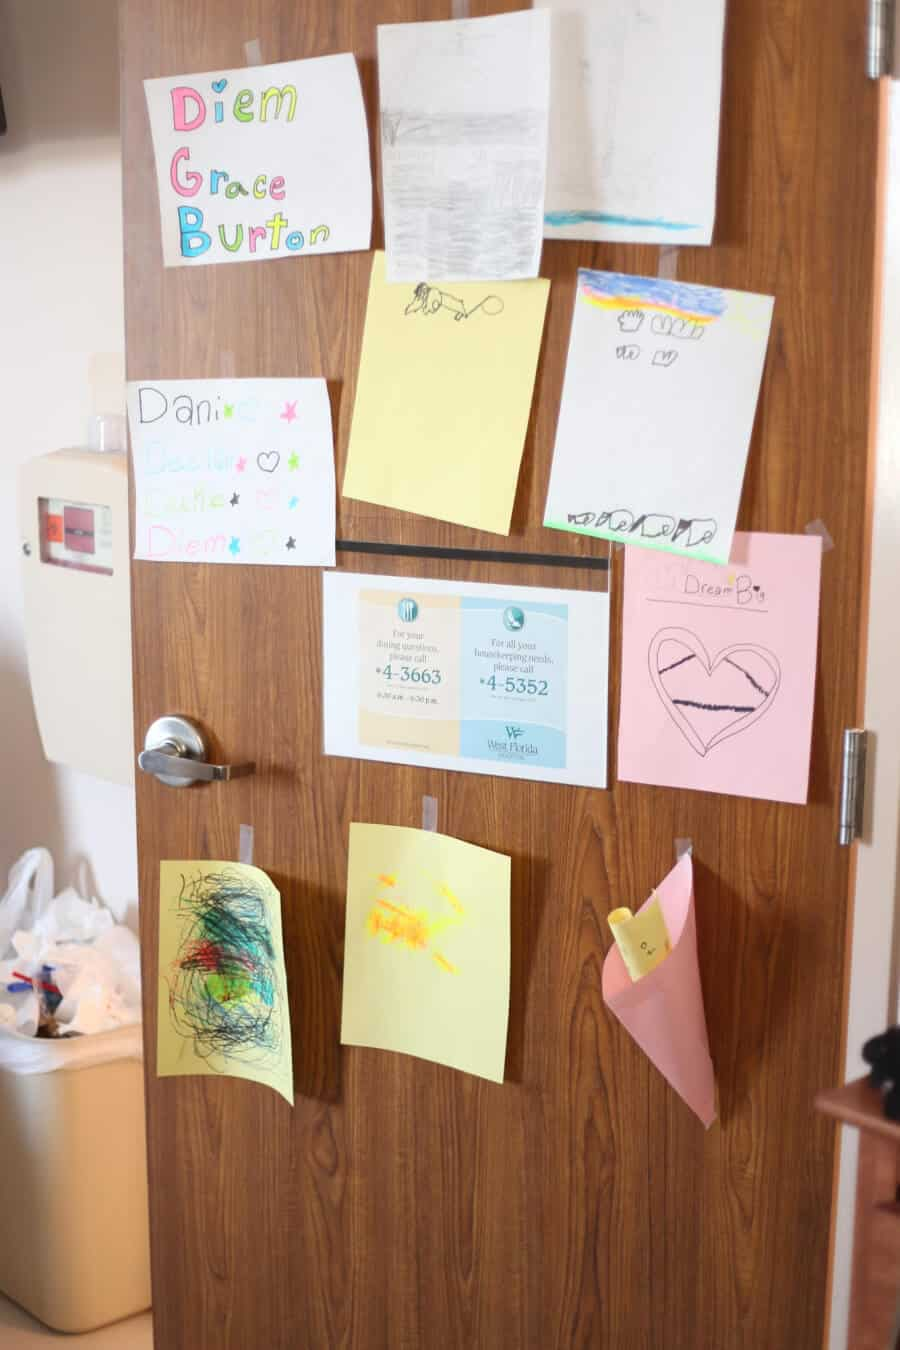 Notes and pictures the siblings drew for their mom are taped on the hospital door.